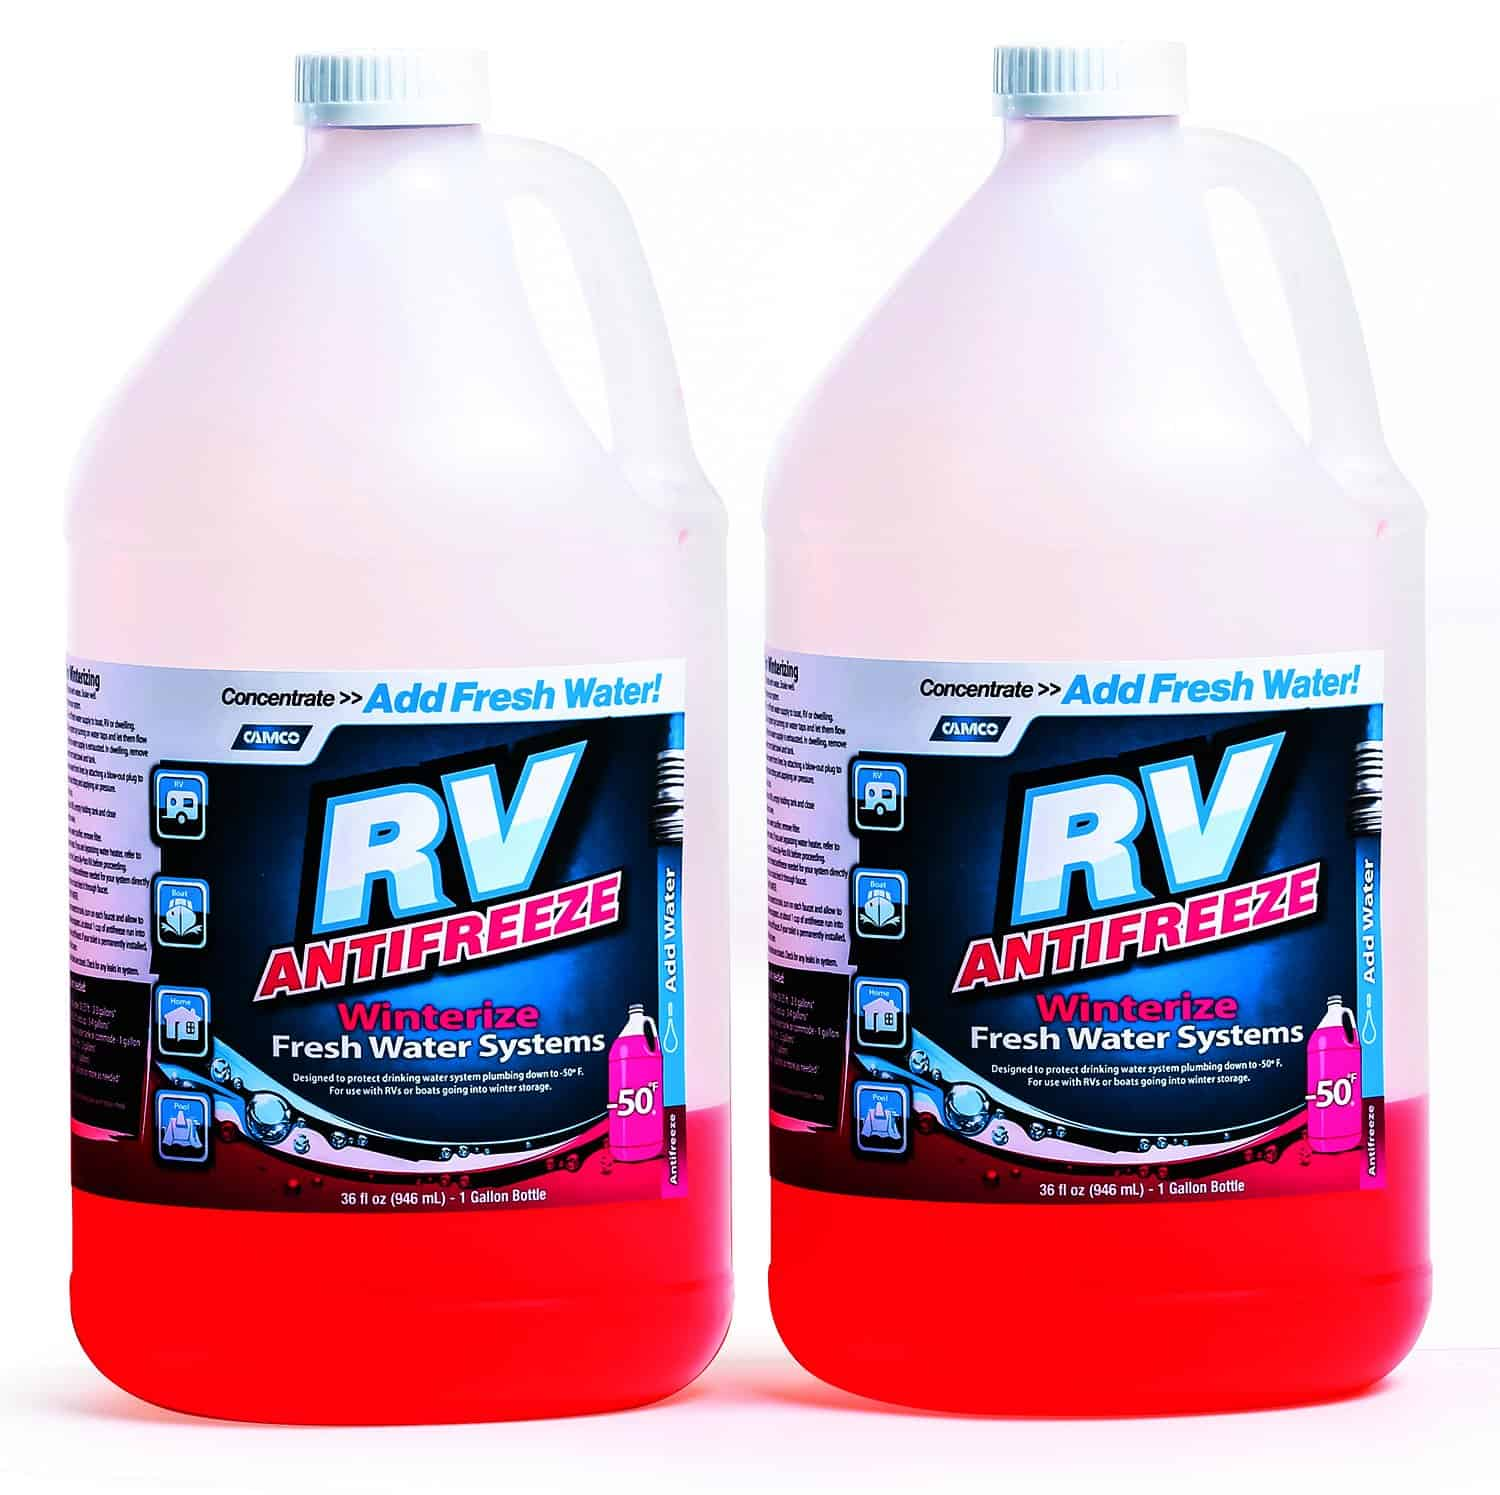 Camco RV antifreeze bottles